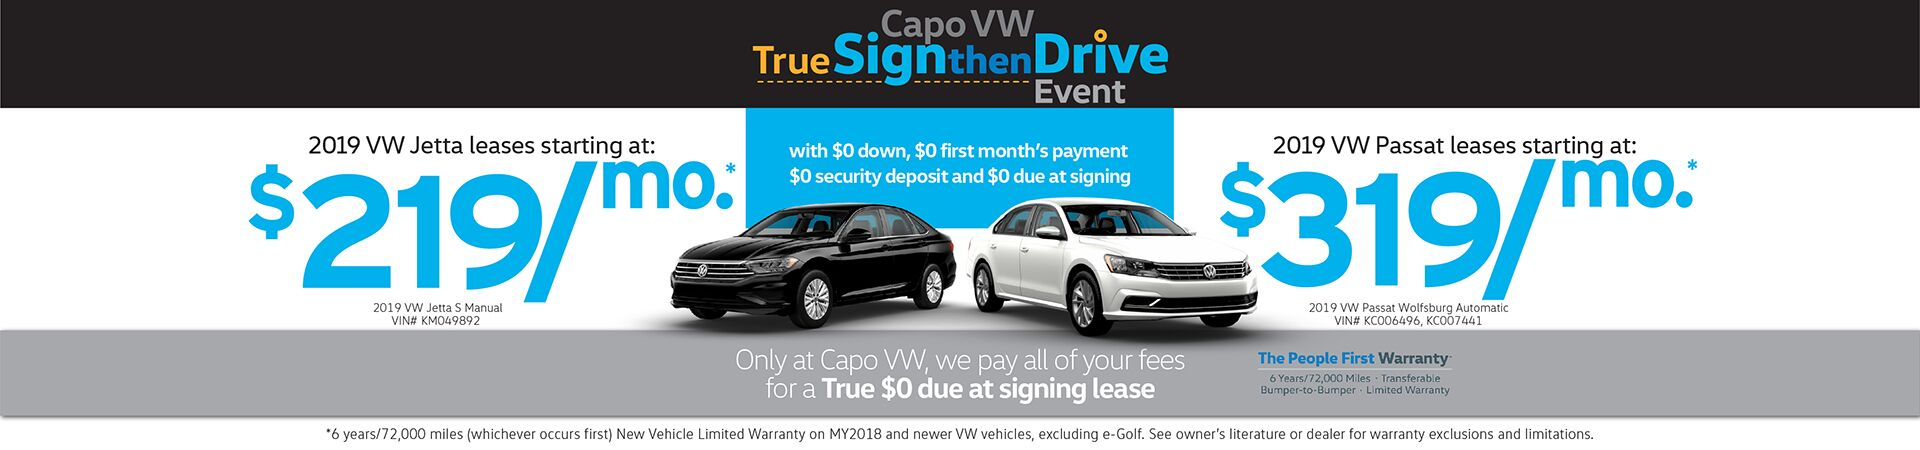 Capo VW Sign then Drive Leases as low as $219/mo. with Absolutely $0 due at signing